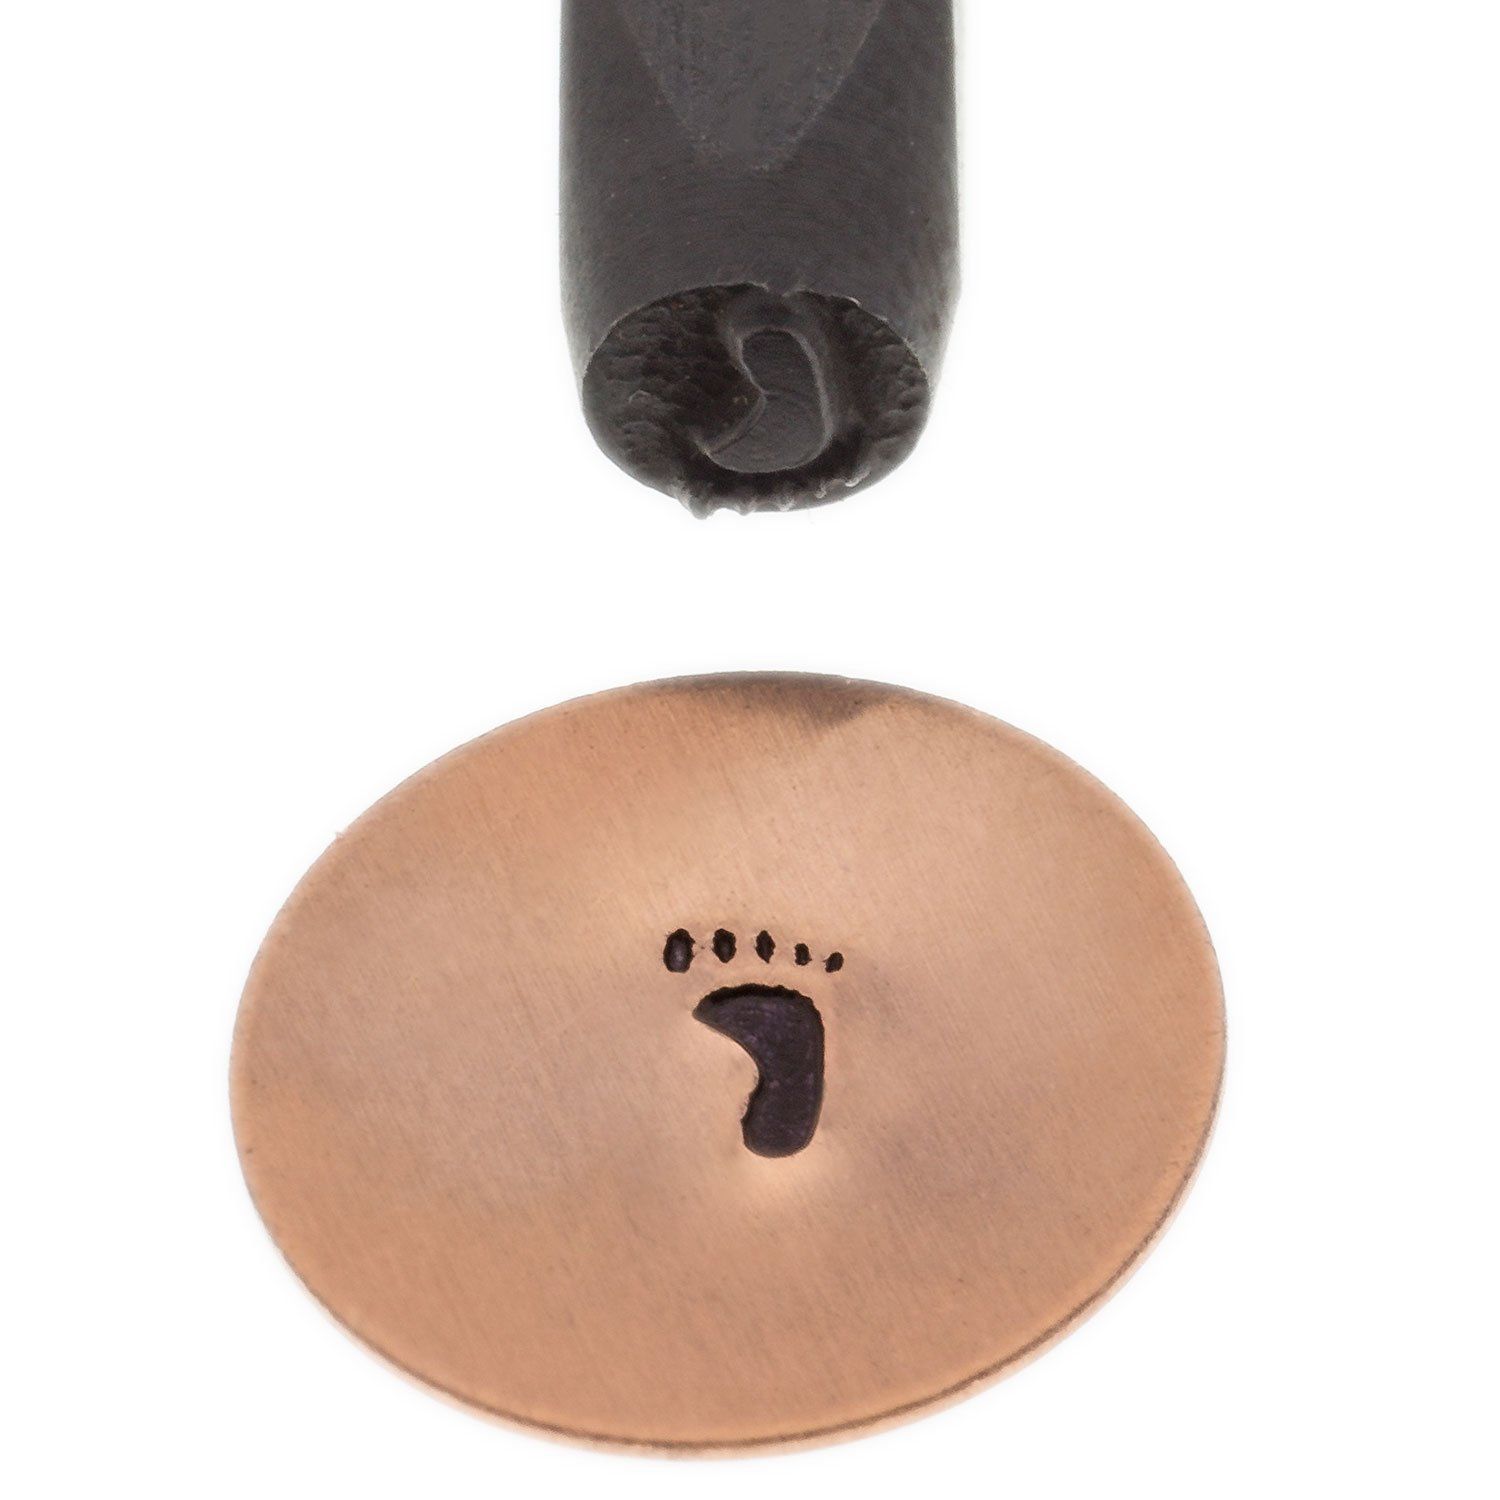 Elite Design Stamp, Solid, Right Footprint | PUN-202.49 by EURO TOOL